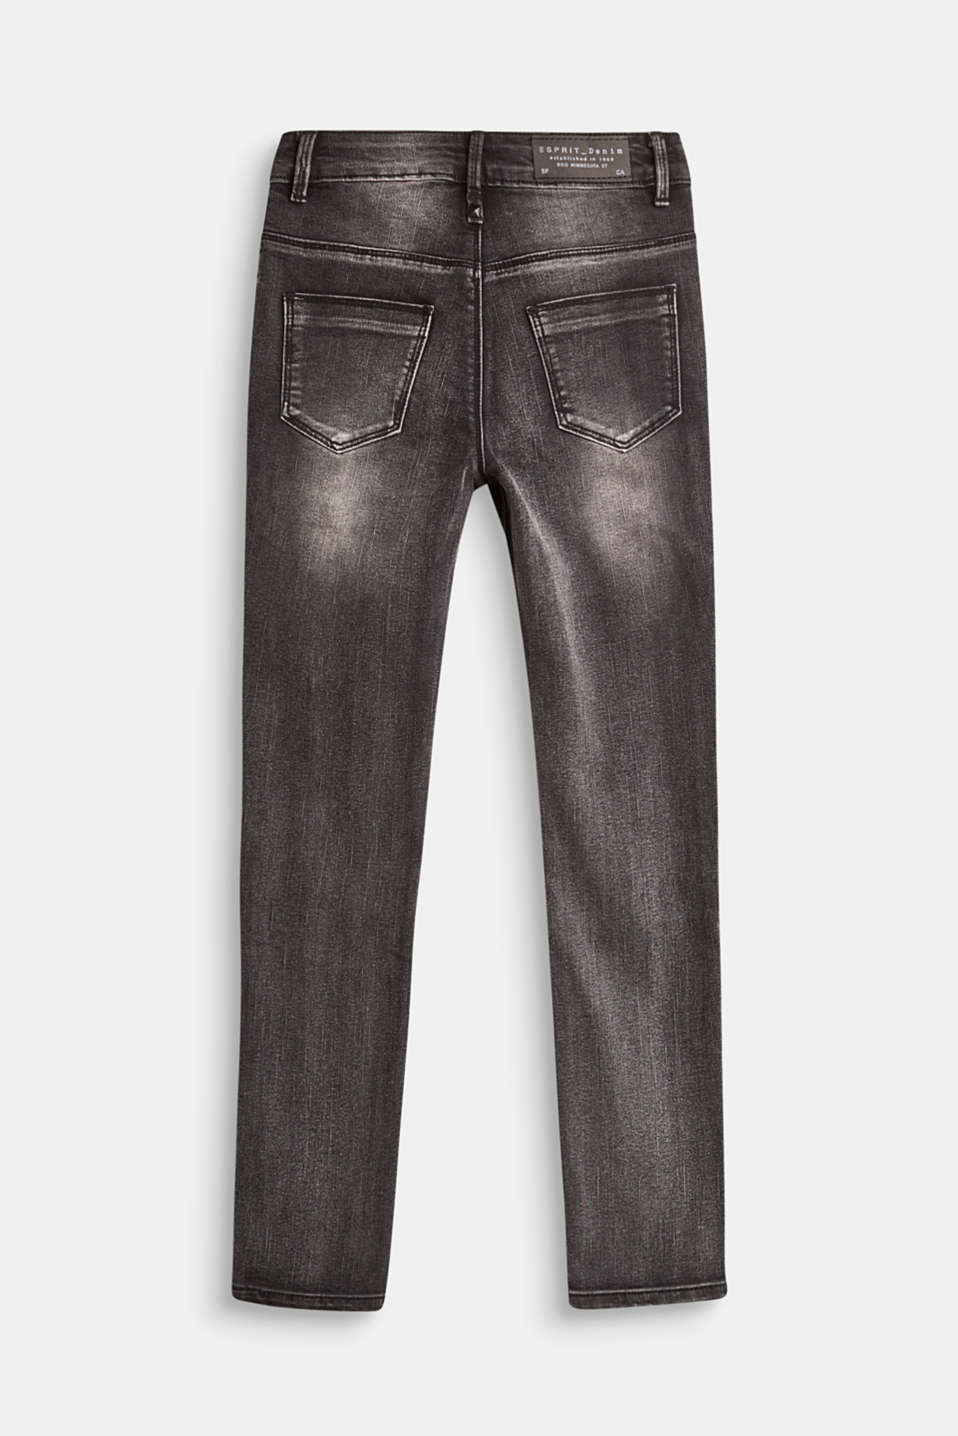 Stretch jeans with a high, adjustable waistband